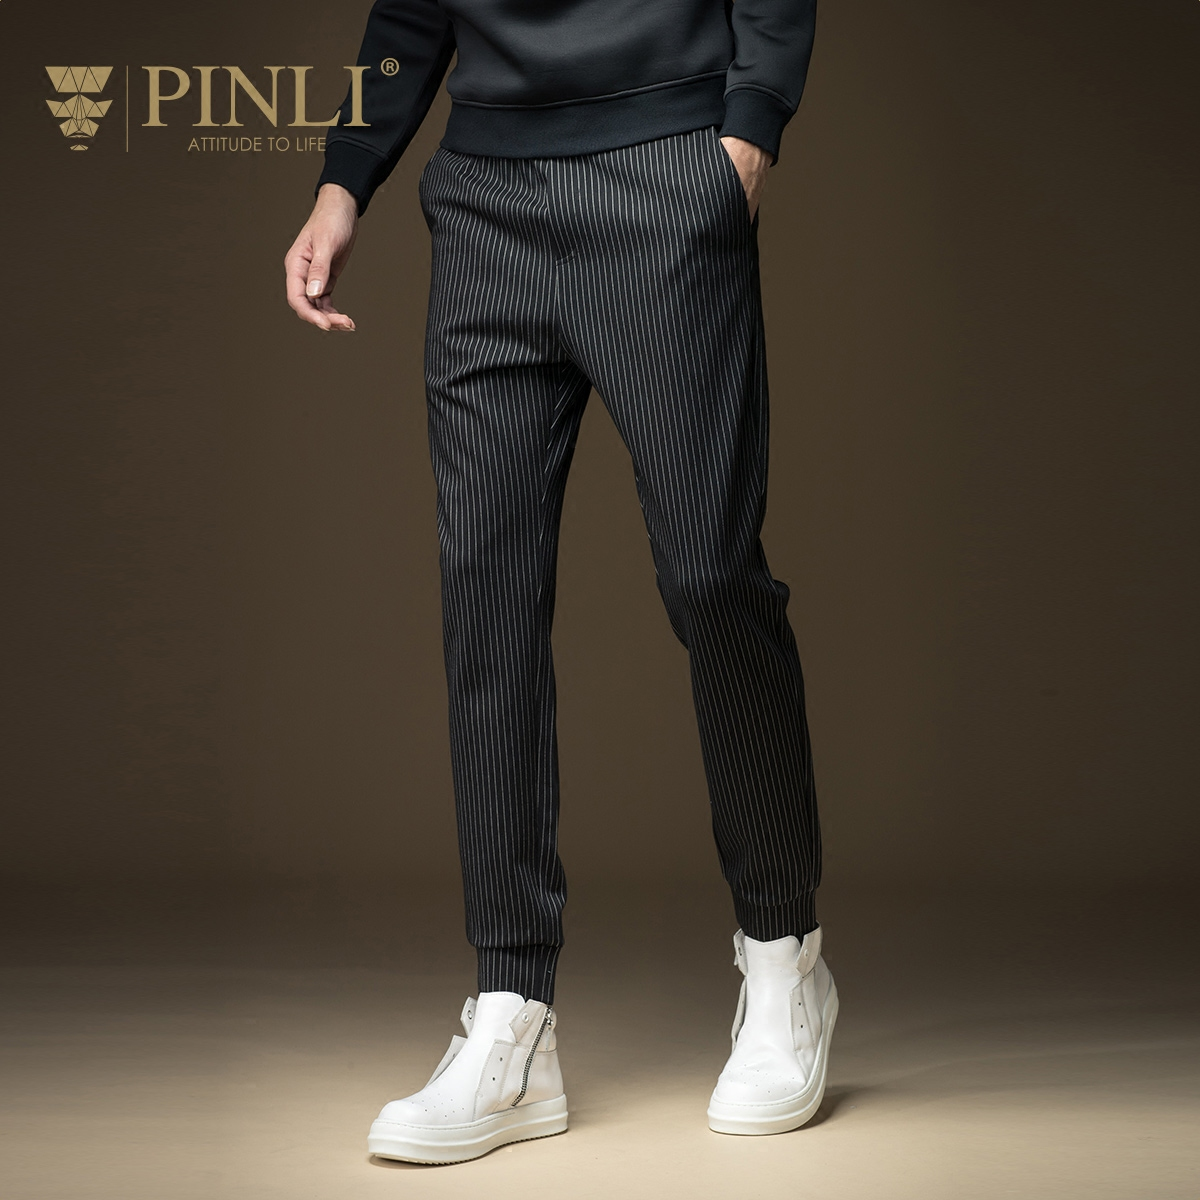 2019 Pants Men Pepe Pinli New Arrival Sale Loose Bamboo Fiber Mid Winter Men's Casual Striped Trousers Feet Upon The B16315811